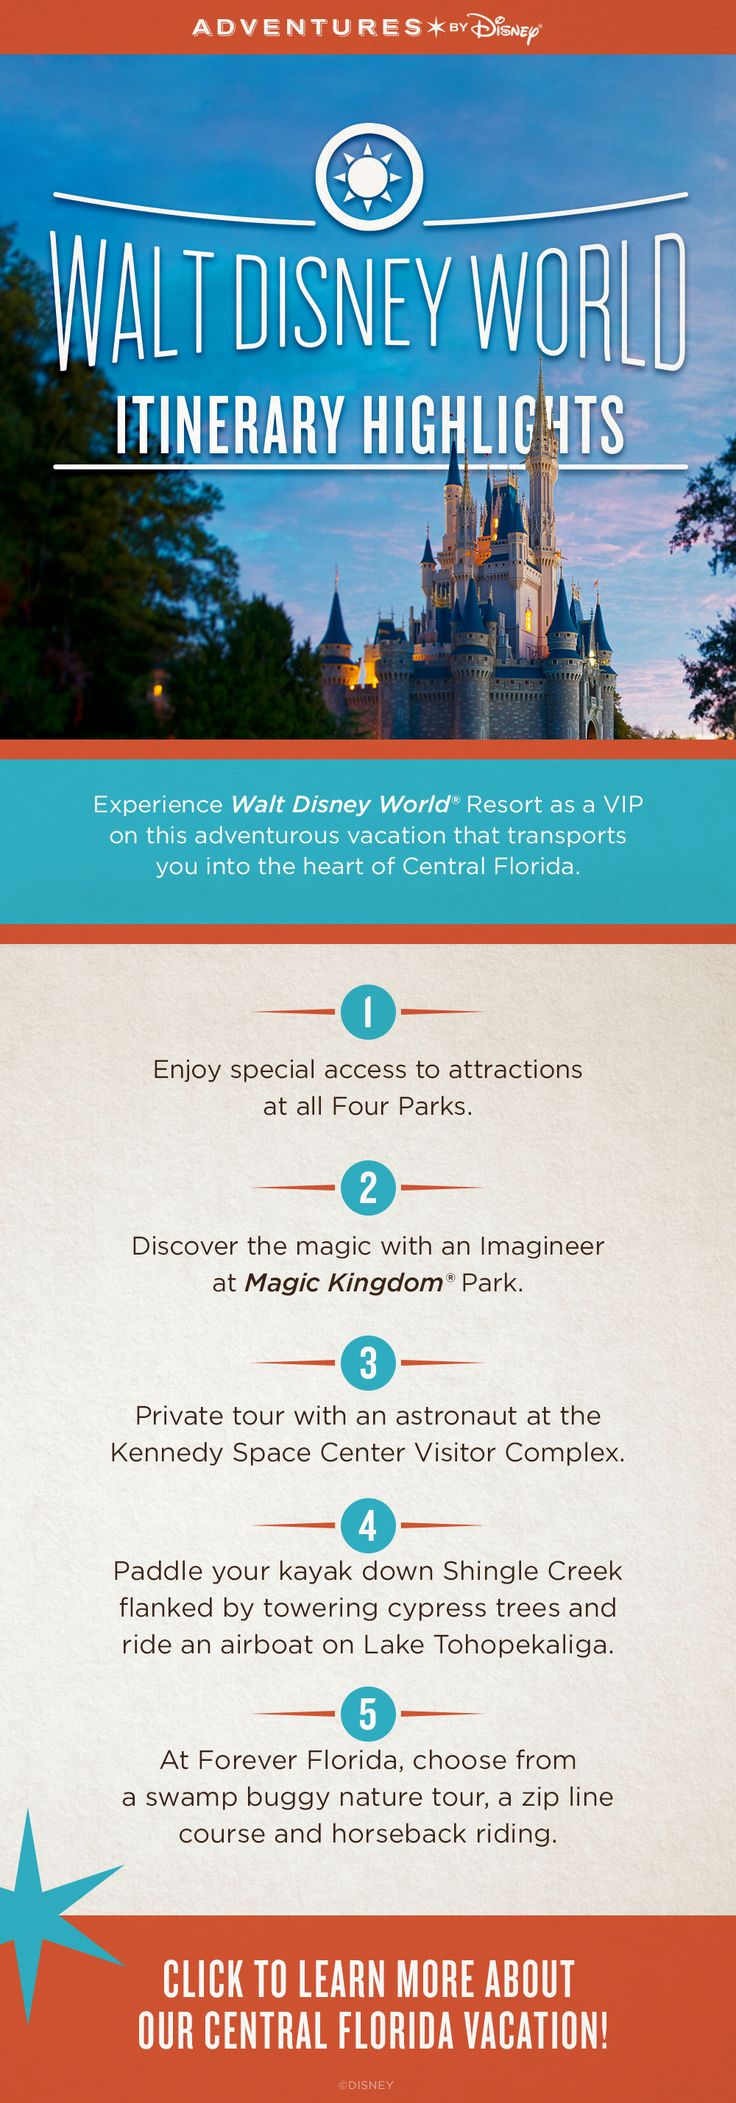 Experience the magic of Walt Disney World, venture in the natural waterways of Old Florida, and spend the day with an astronaut at the Kennedy Space Center Visitor Complex on our new Central Florida vacation!